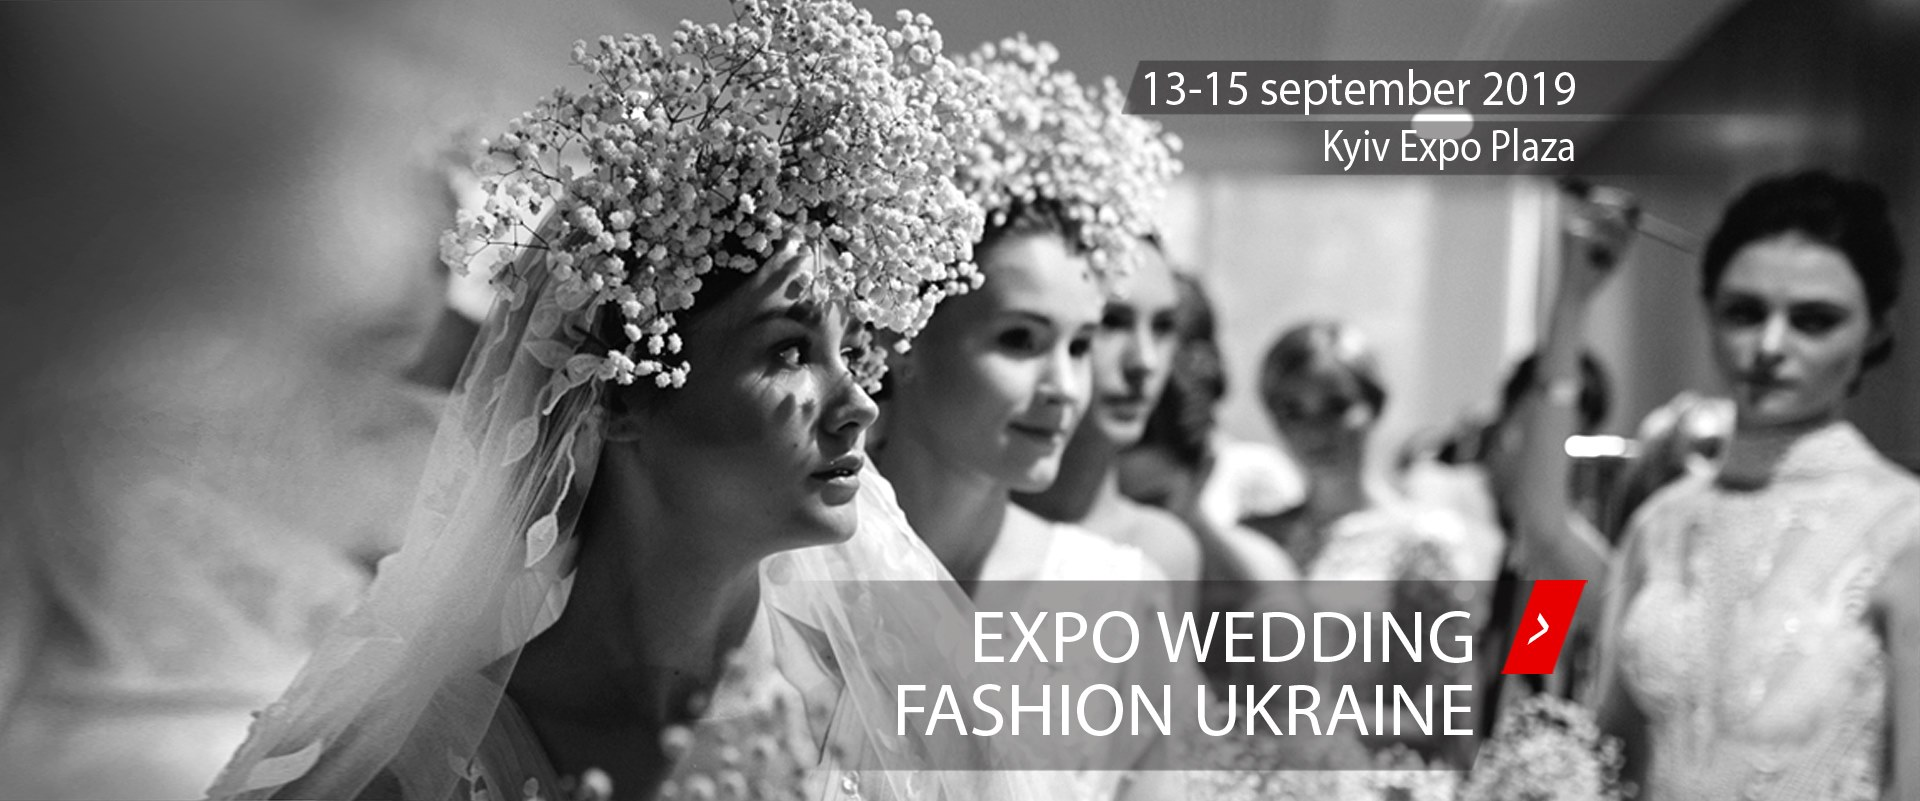 EXPO Wedding Fashion Ukraine 2019, 13-15 вересня, Київ